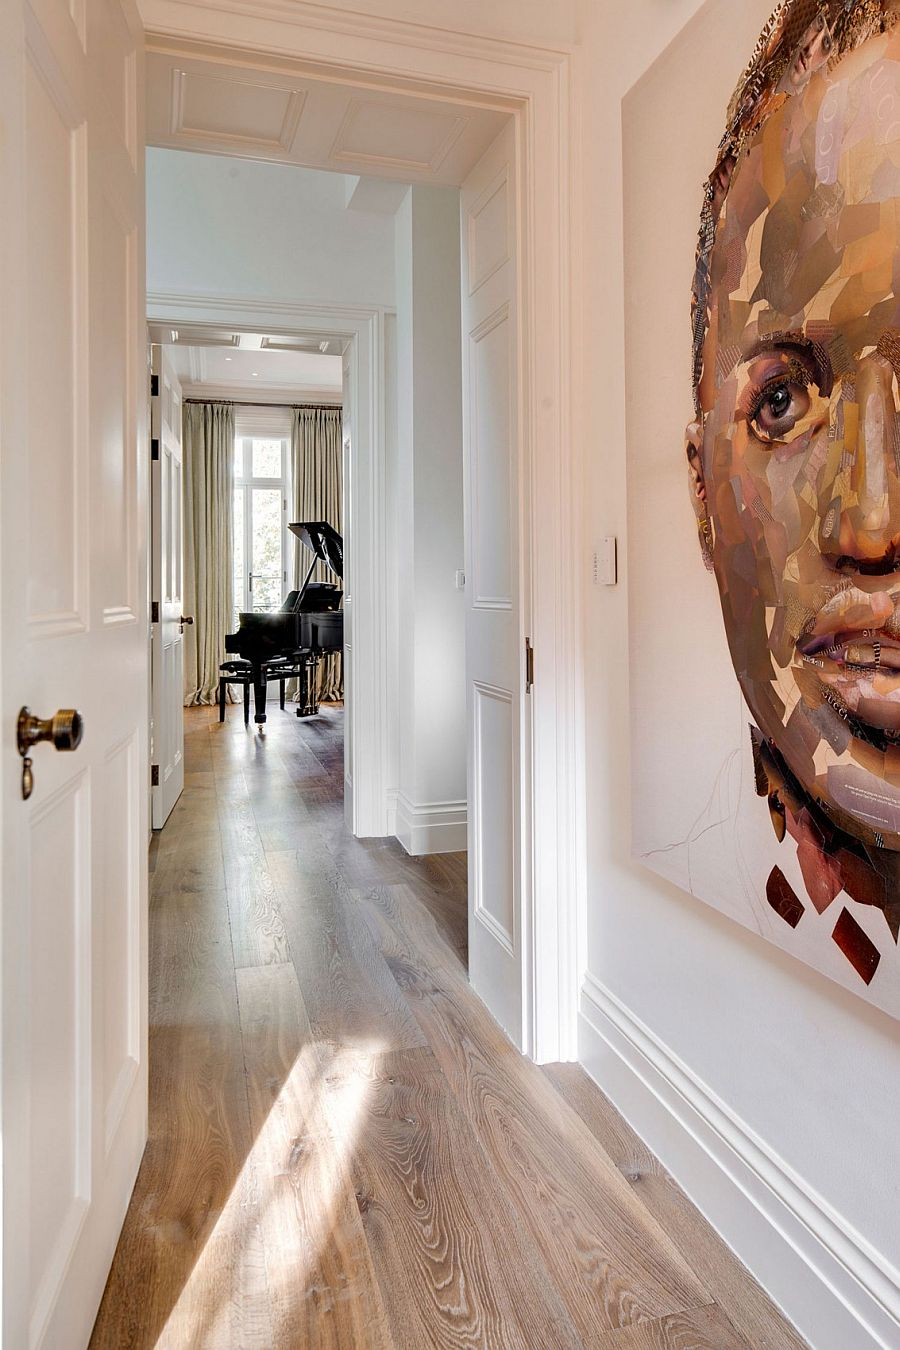 Wall art defines and shapes the revamp of the classic Georgian home